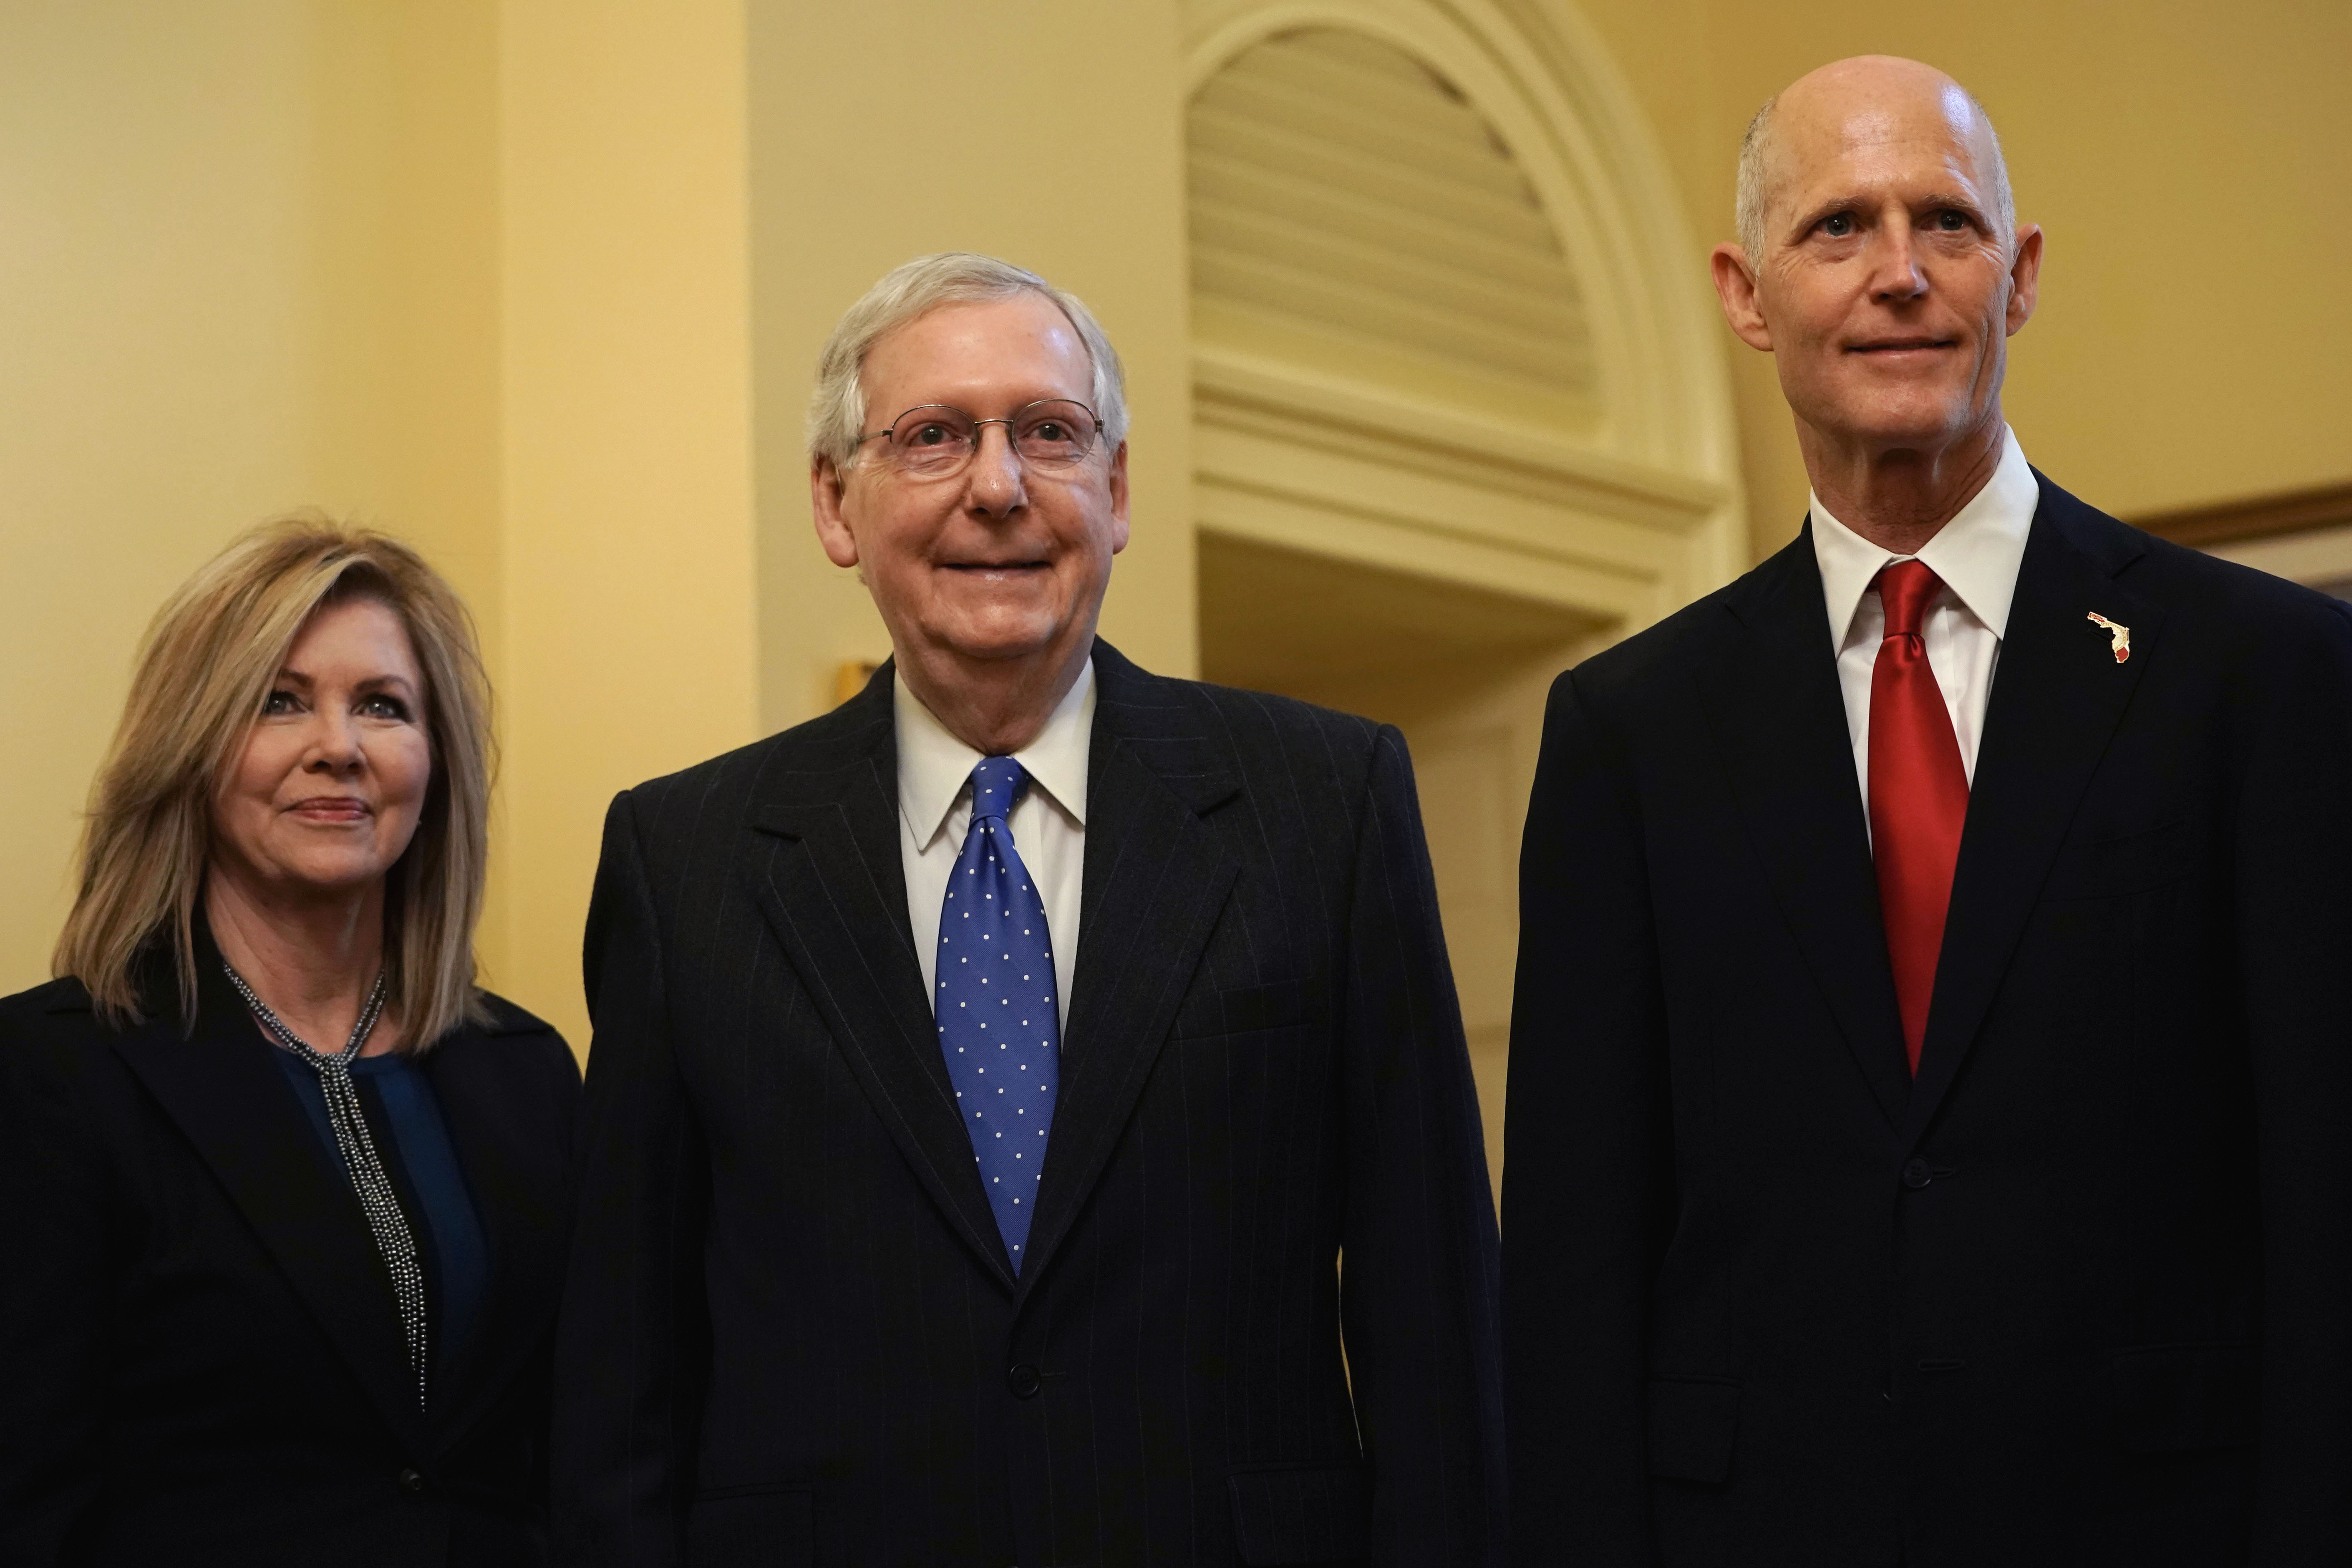 U.S. Senate Majority Leader Sen. Mitch McConnell (C) poses for photos with Senator-elect Marsha Blackburn (L) and Republican U.S. Senate candidate for Florida and incumbent Florida Gov. Rick Scott (R) during a photo-op at the U.S. Capitol November 14, 2018 in Washington, DC. Alex Wong/Getty Images